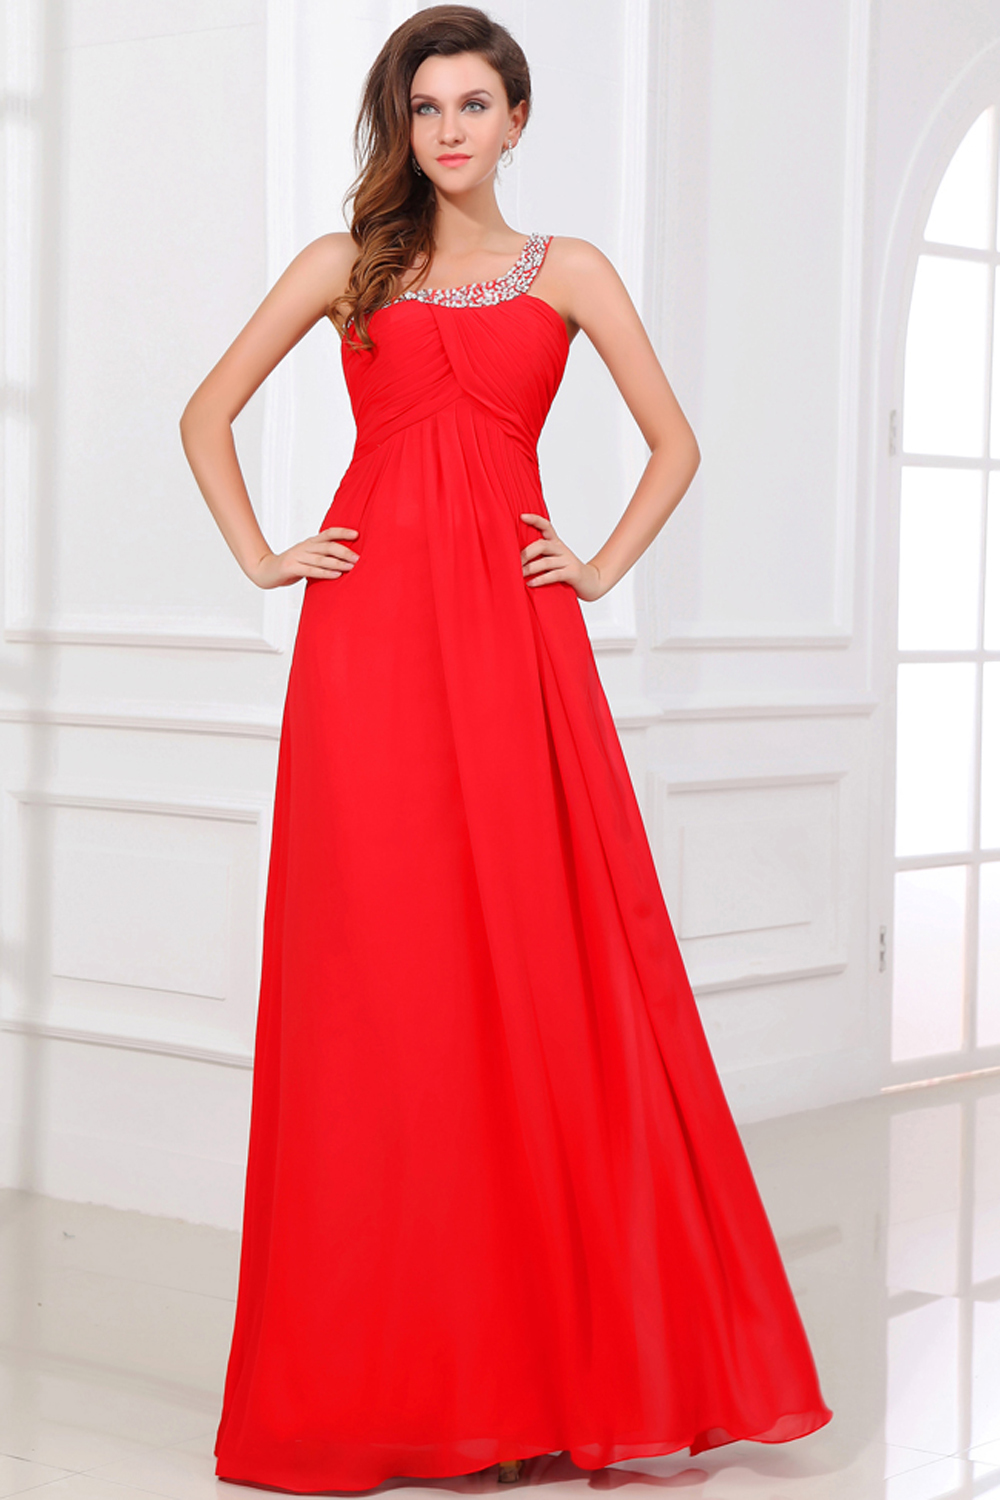 A-Line/Princess One-Shoulder Floor Length Chiffon Prom Dresses with Beads